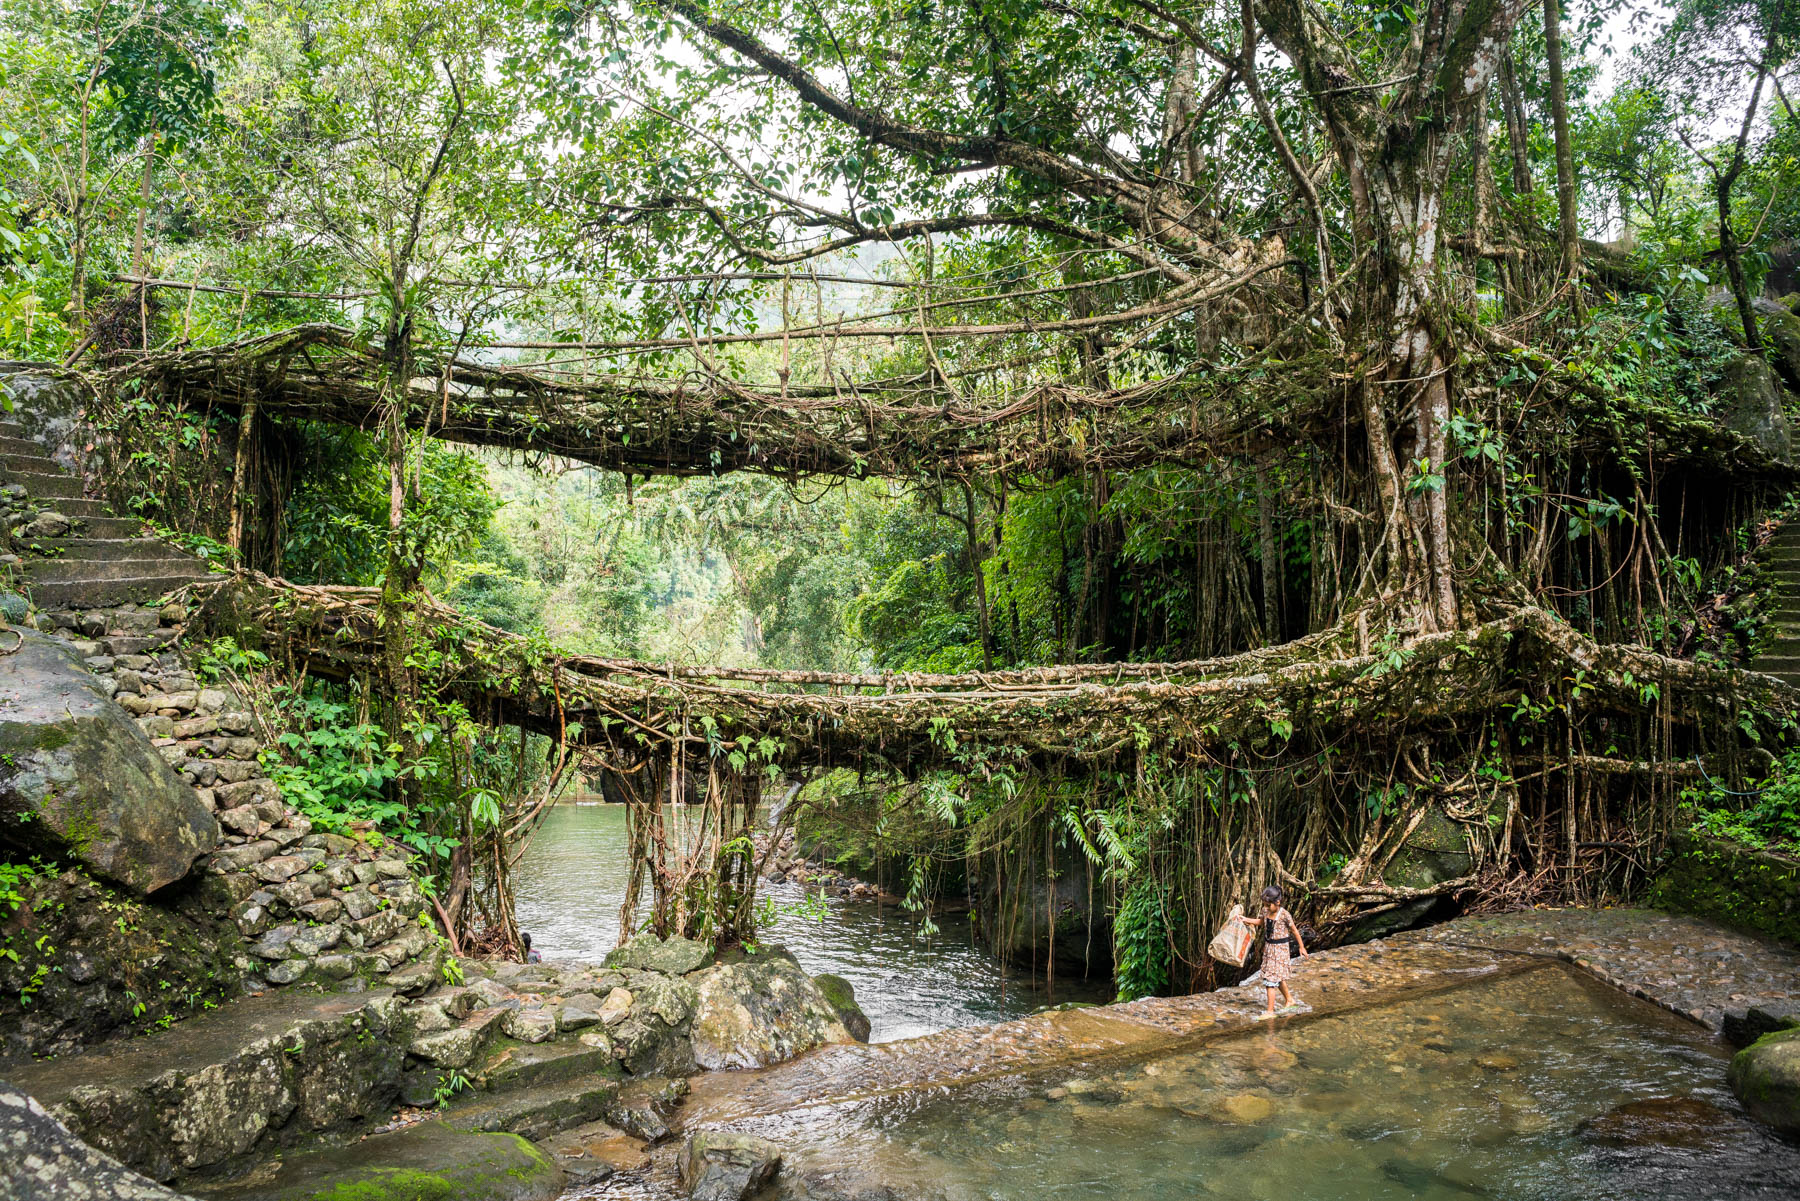 Why you need to travel in Northeast India - Khasi girl by root bridges in Nongriat, Meghalaya - Lost With Purpose travel blog